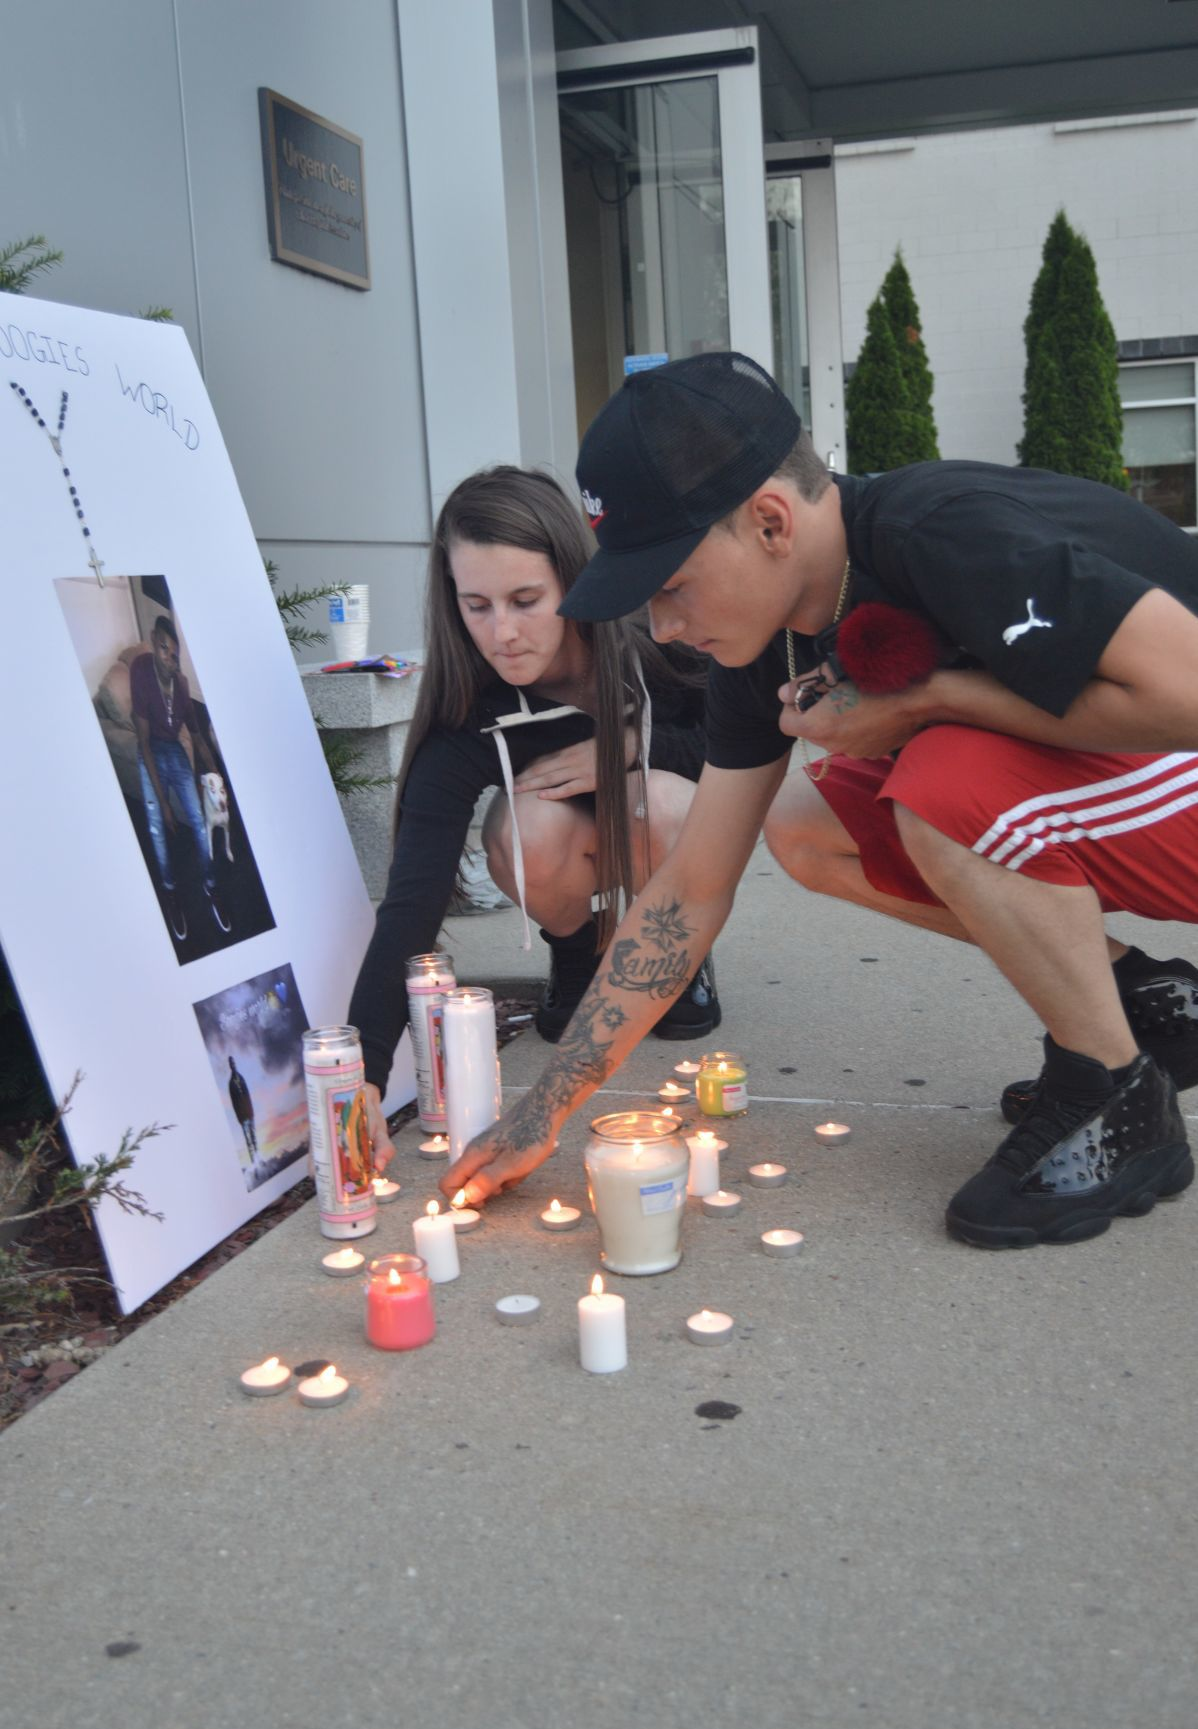 Manchester teen, 19, identified as victim of fatal shooting